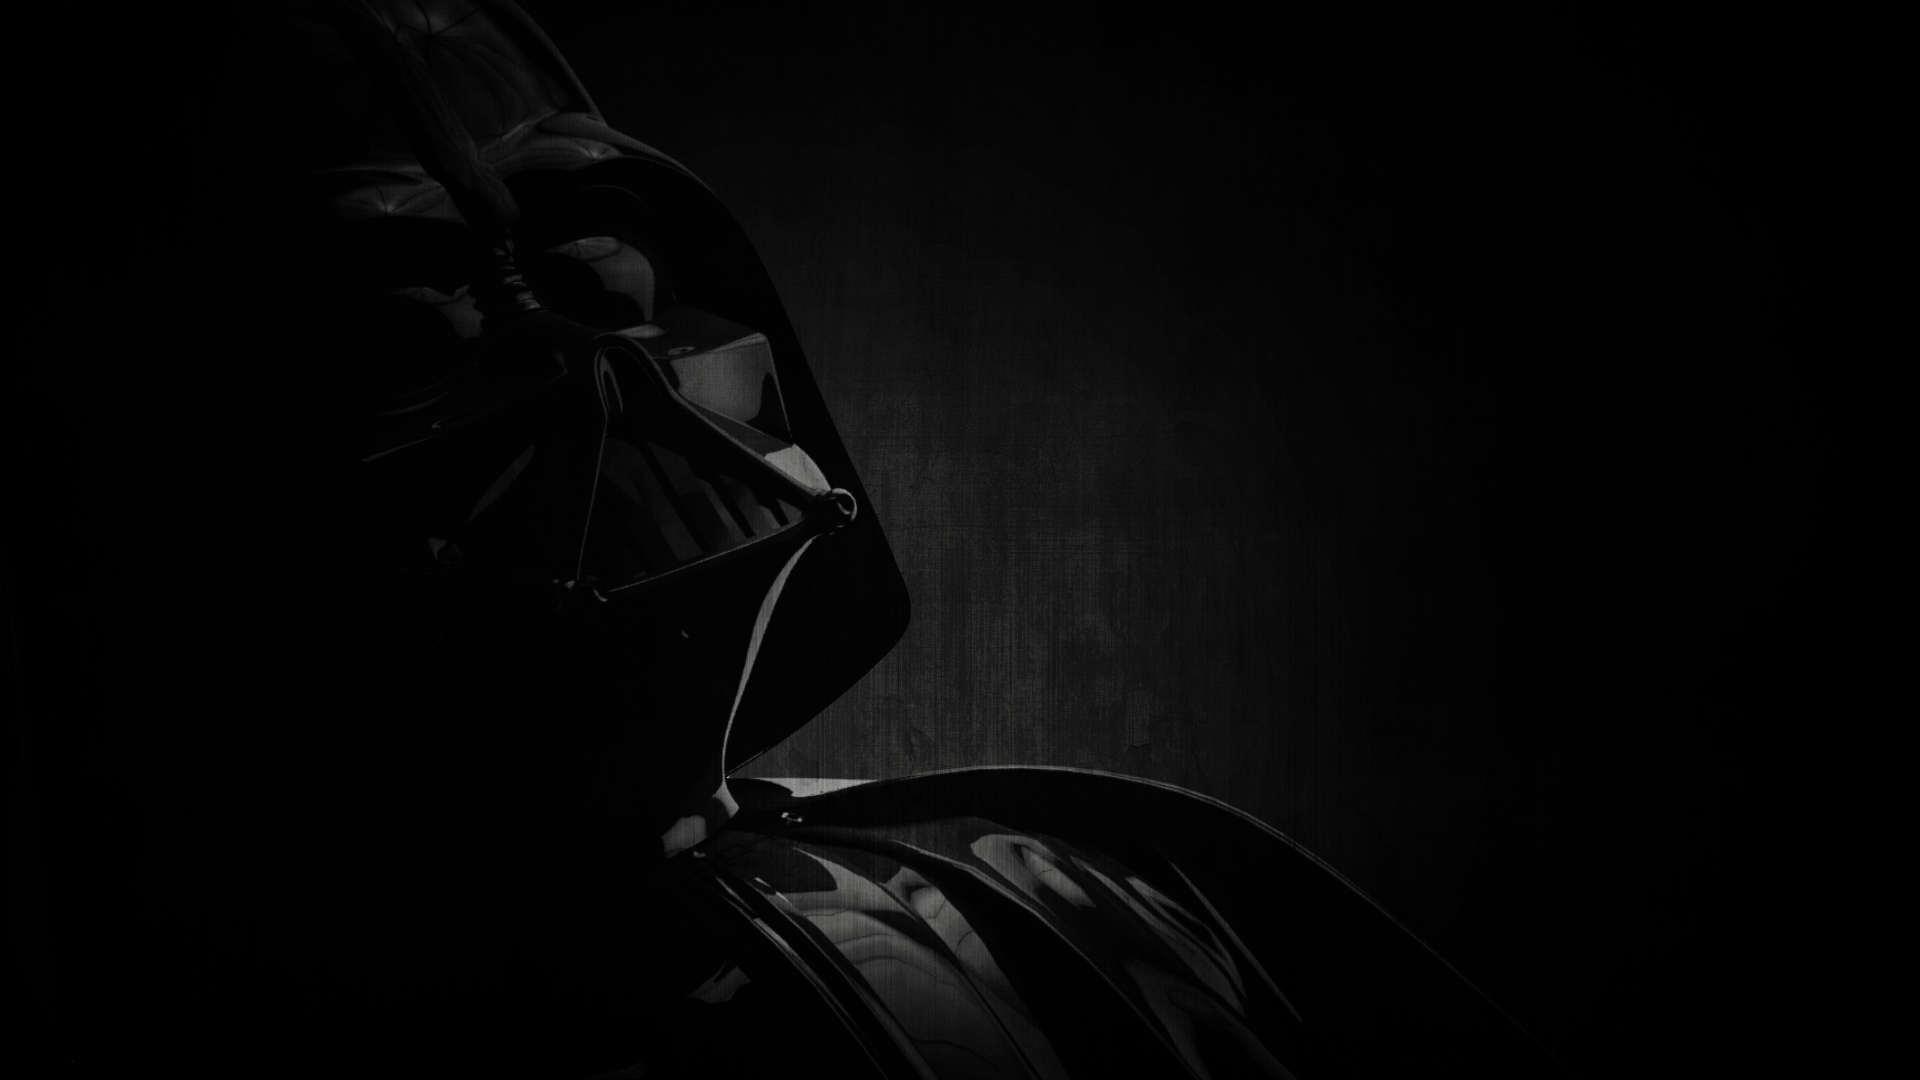 darth vader character high definition wallpapers hd